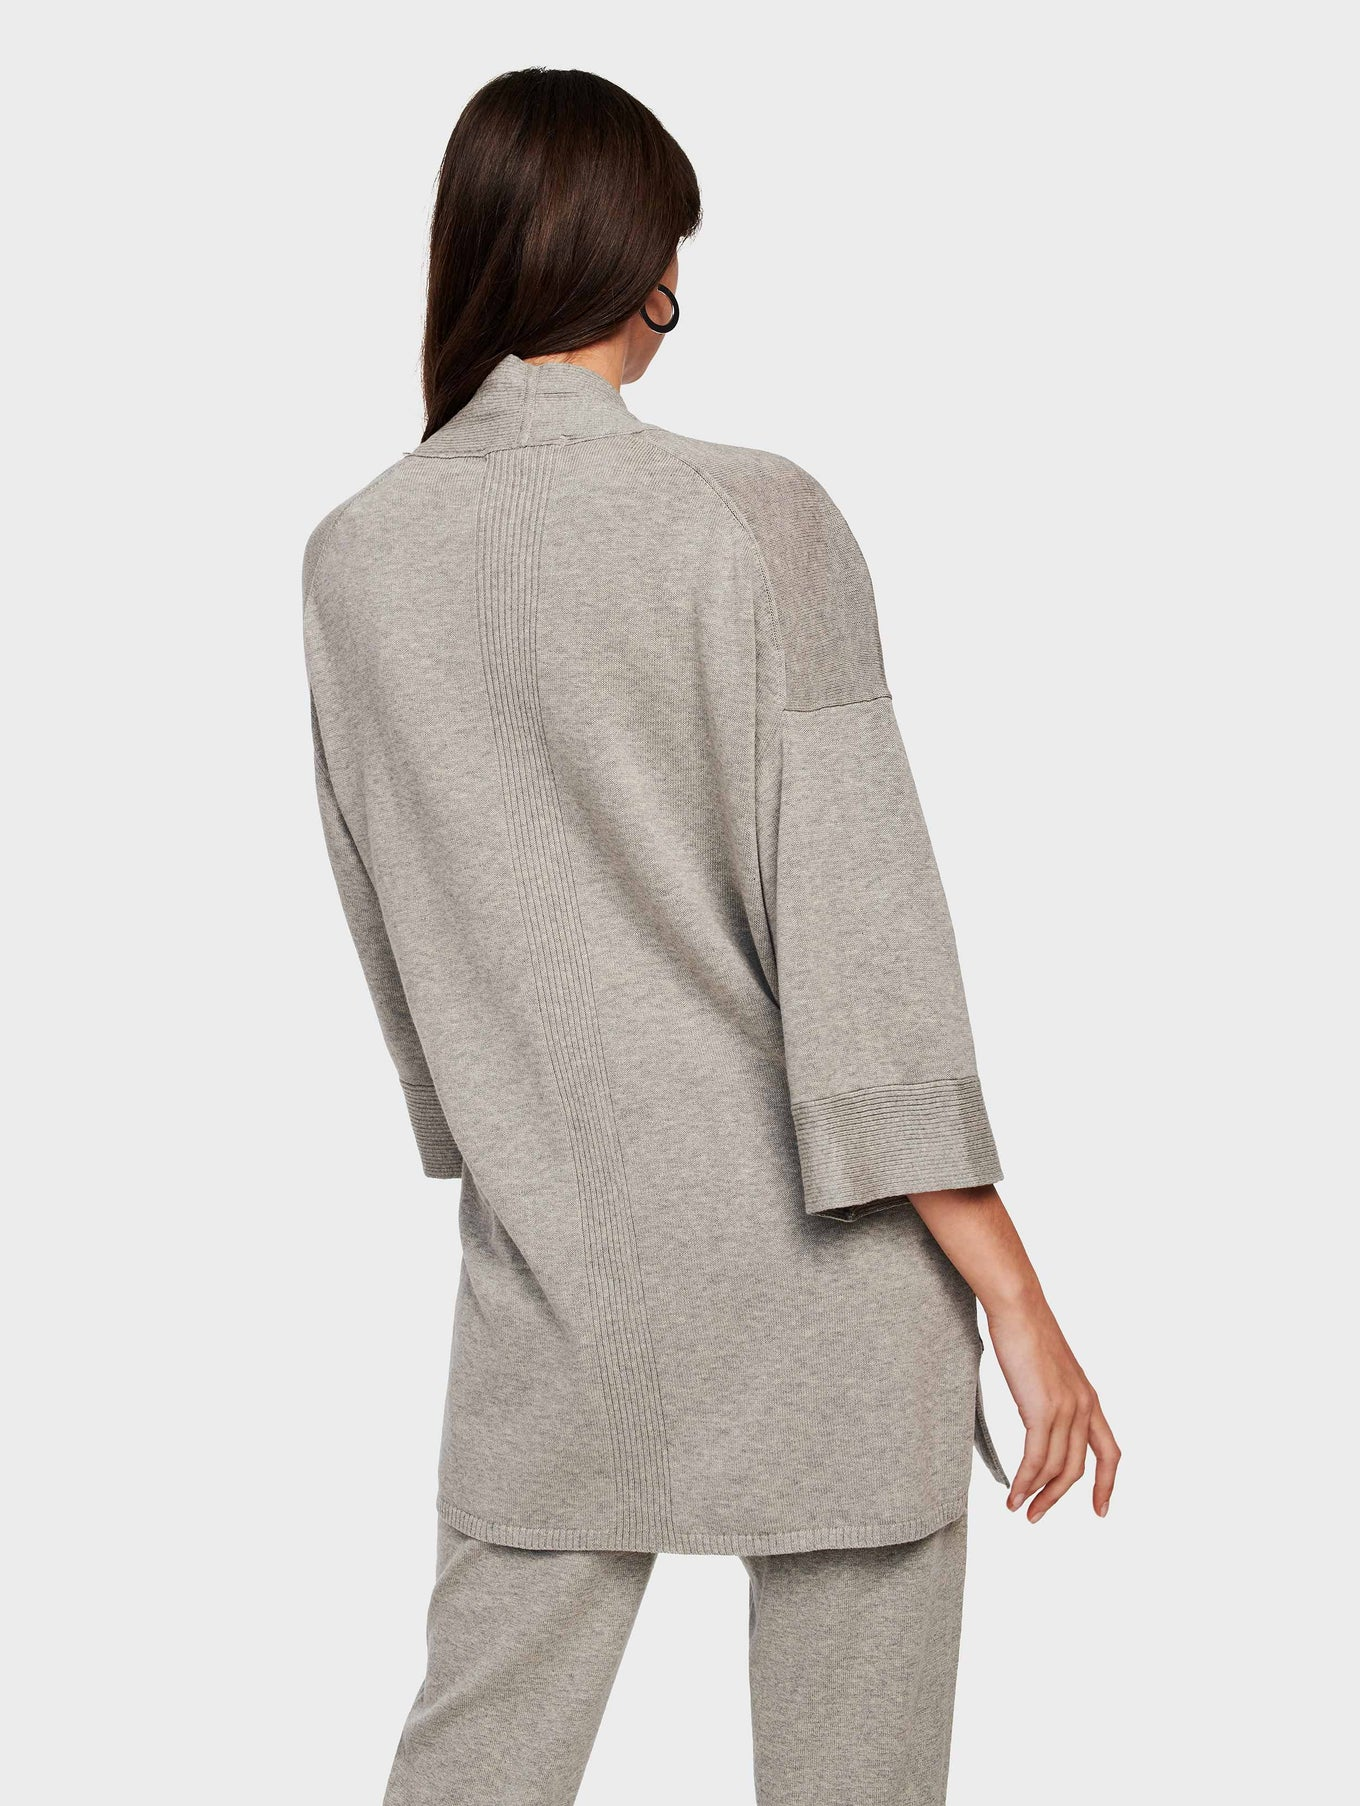 Organic Cotton Belted Rib Trim Cardigan - Grey Marble - Image 3